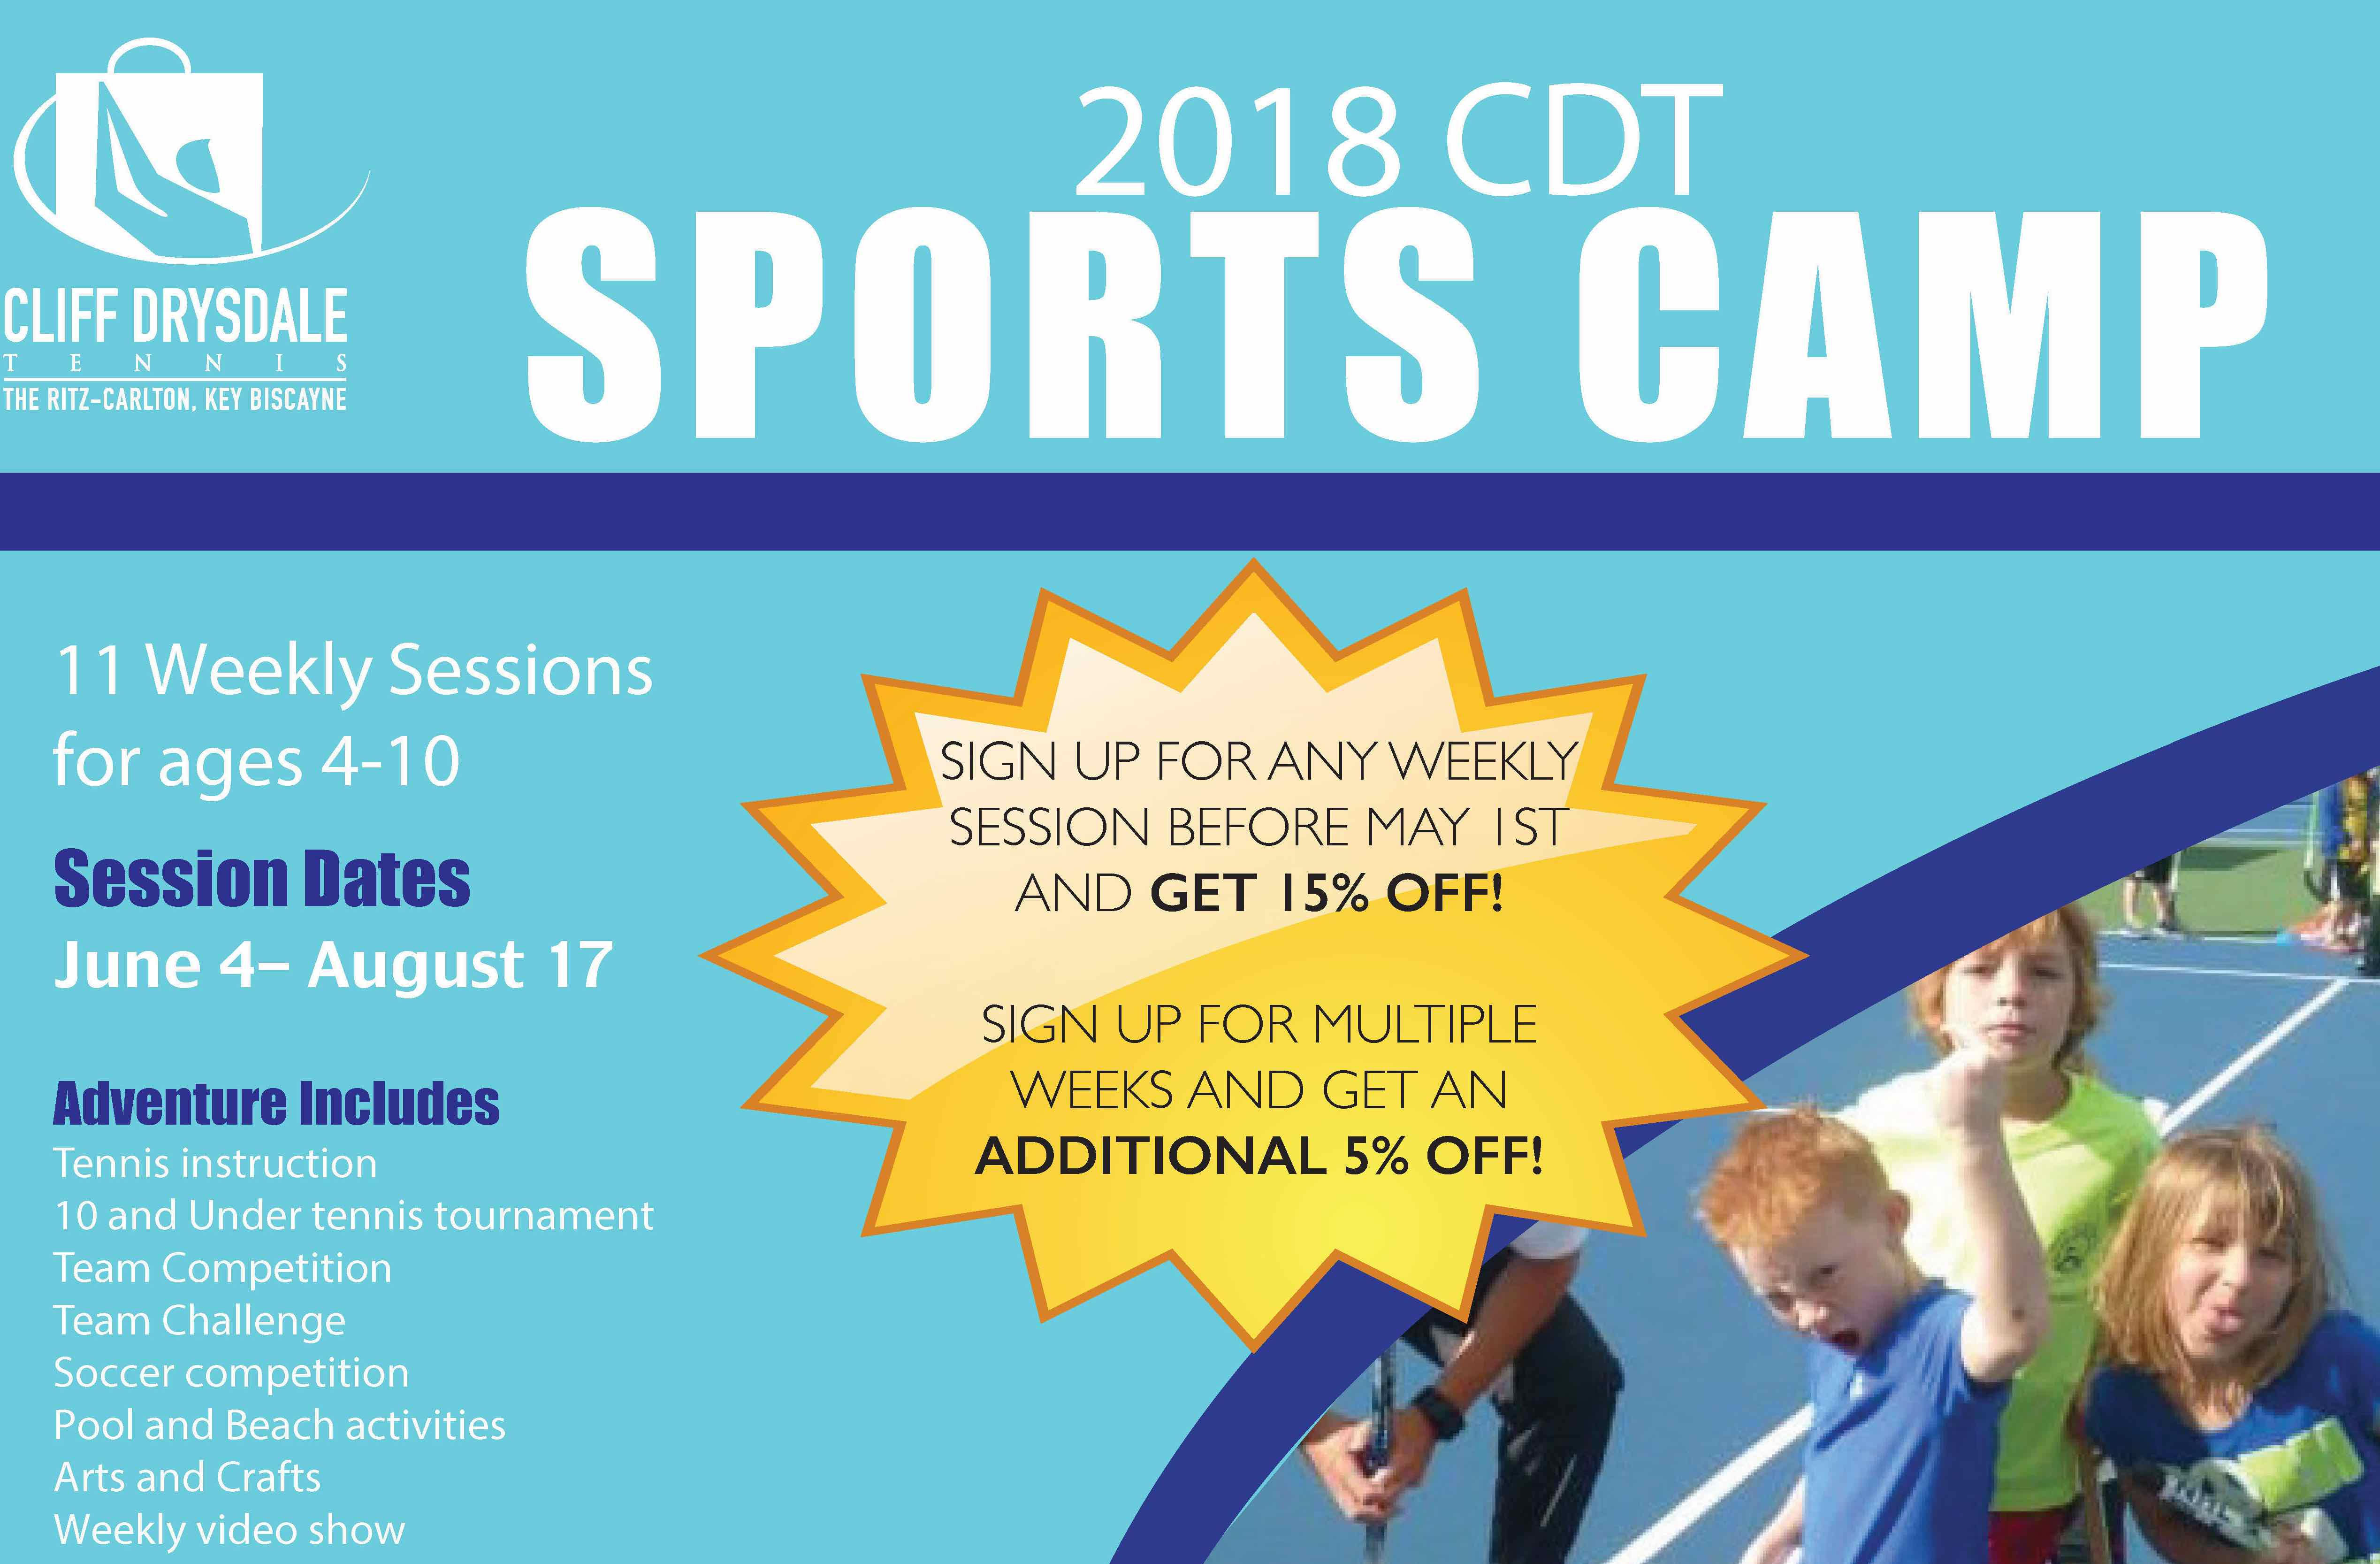 Summer Sports Camp Rckb Voucher The Ritz Carlton Hotel Seoul Please Fill Out All Required Fields On Registration Form To Confirm Your Childs Spot In Desired Week Of